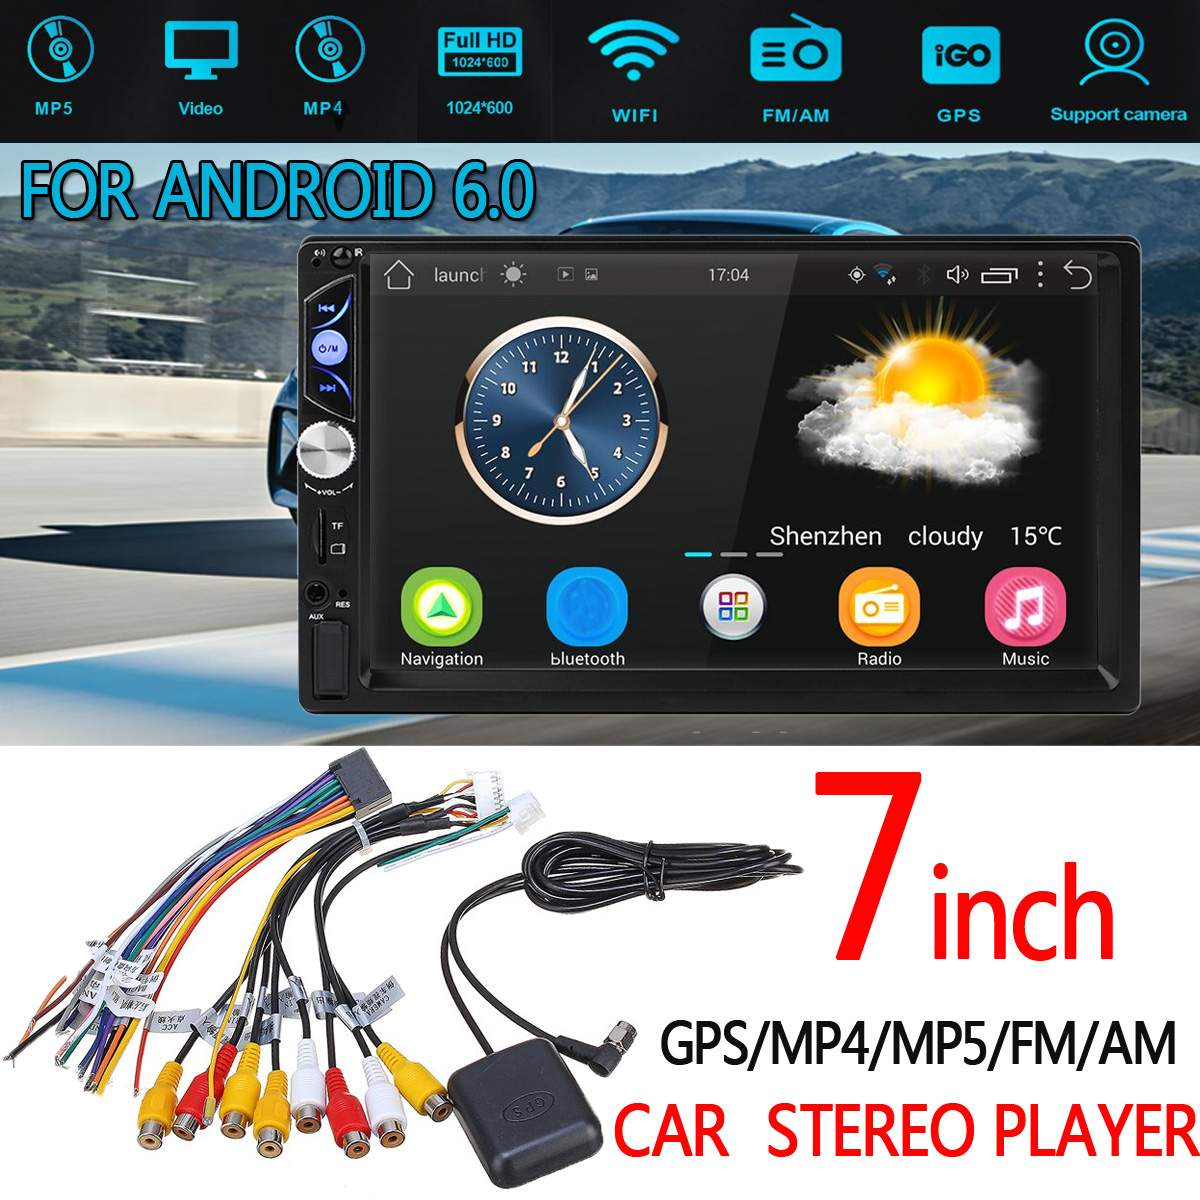 For Android 6.0 7in 2 DIN bluetooth Player 1024*600 Car Stereo GPS/MP4/MP5/FM/AM 3G WIFI Support GPS Navigation Touchable ScreenFor Android 6.0 7in 2 DIN bluetooth Player 1024*600 Car Stereo GPS/MP4/MP5/FM/AM 3G WIFI Support GPS Navigation Touchable Screen